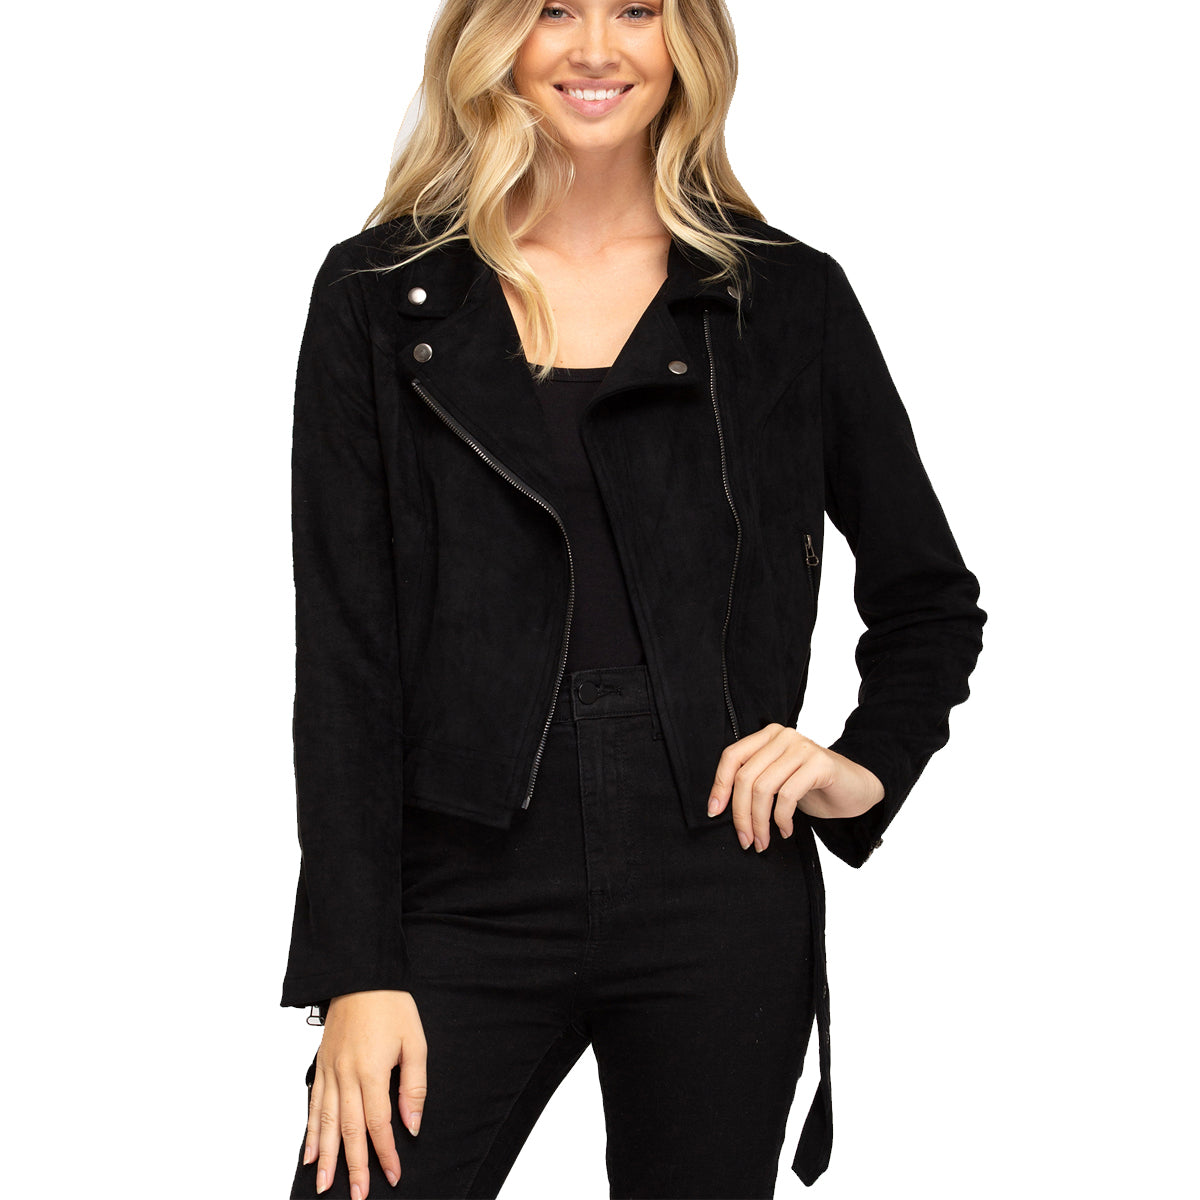 She and Sky Women's Faux Suede Rider Jacket with Belt - Black